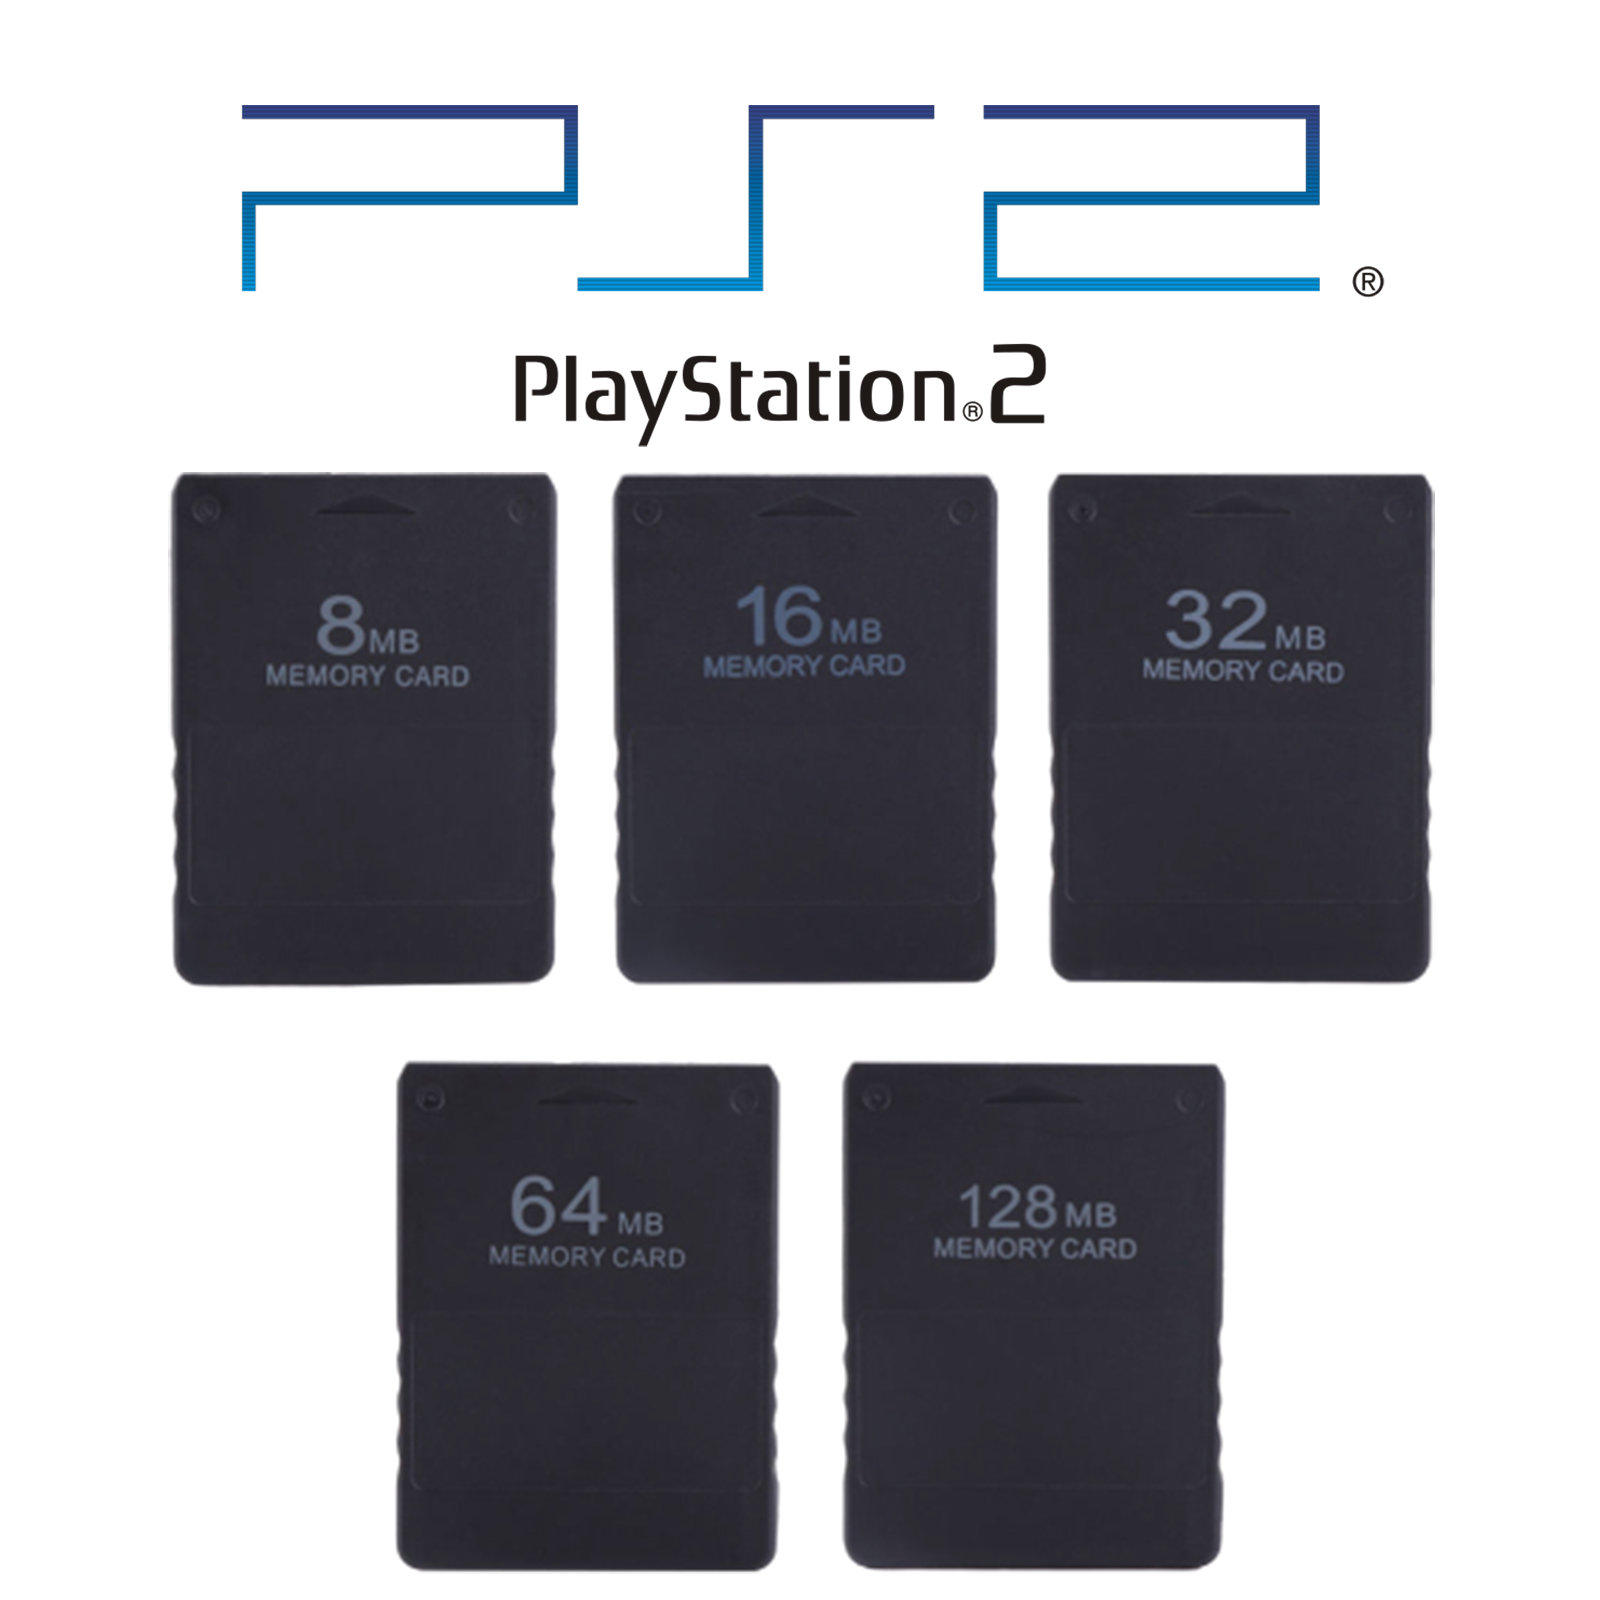 PS2 Memory Card Data Stick for Playstation 2 - 8MB/ 32MB / 64MB / 128MB / 256MB